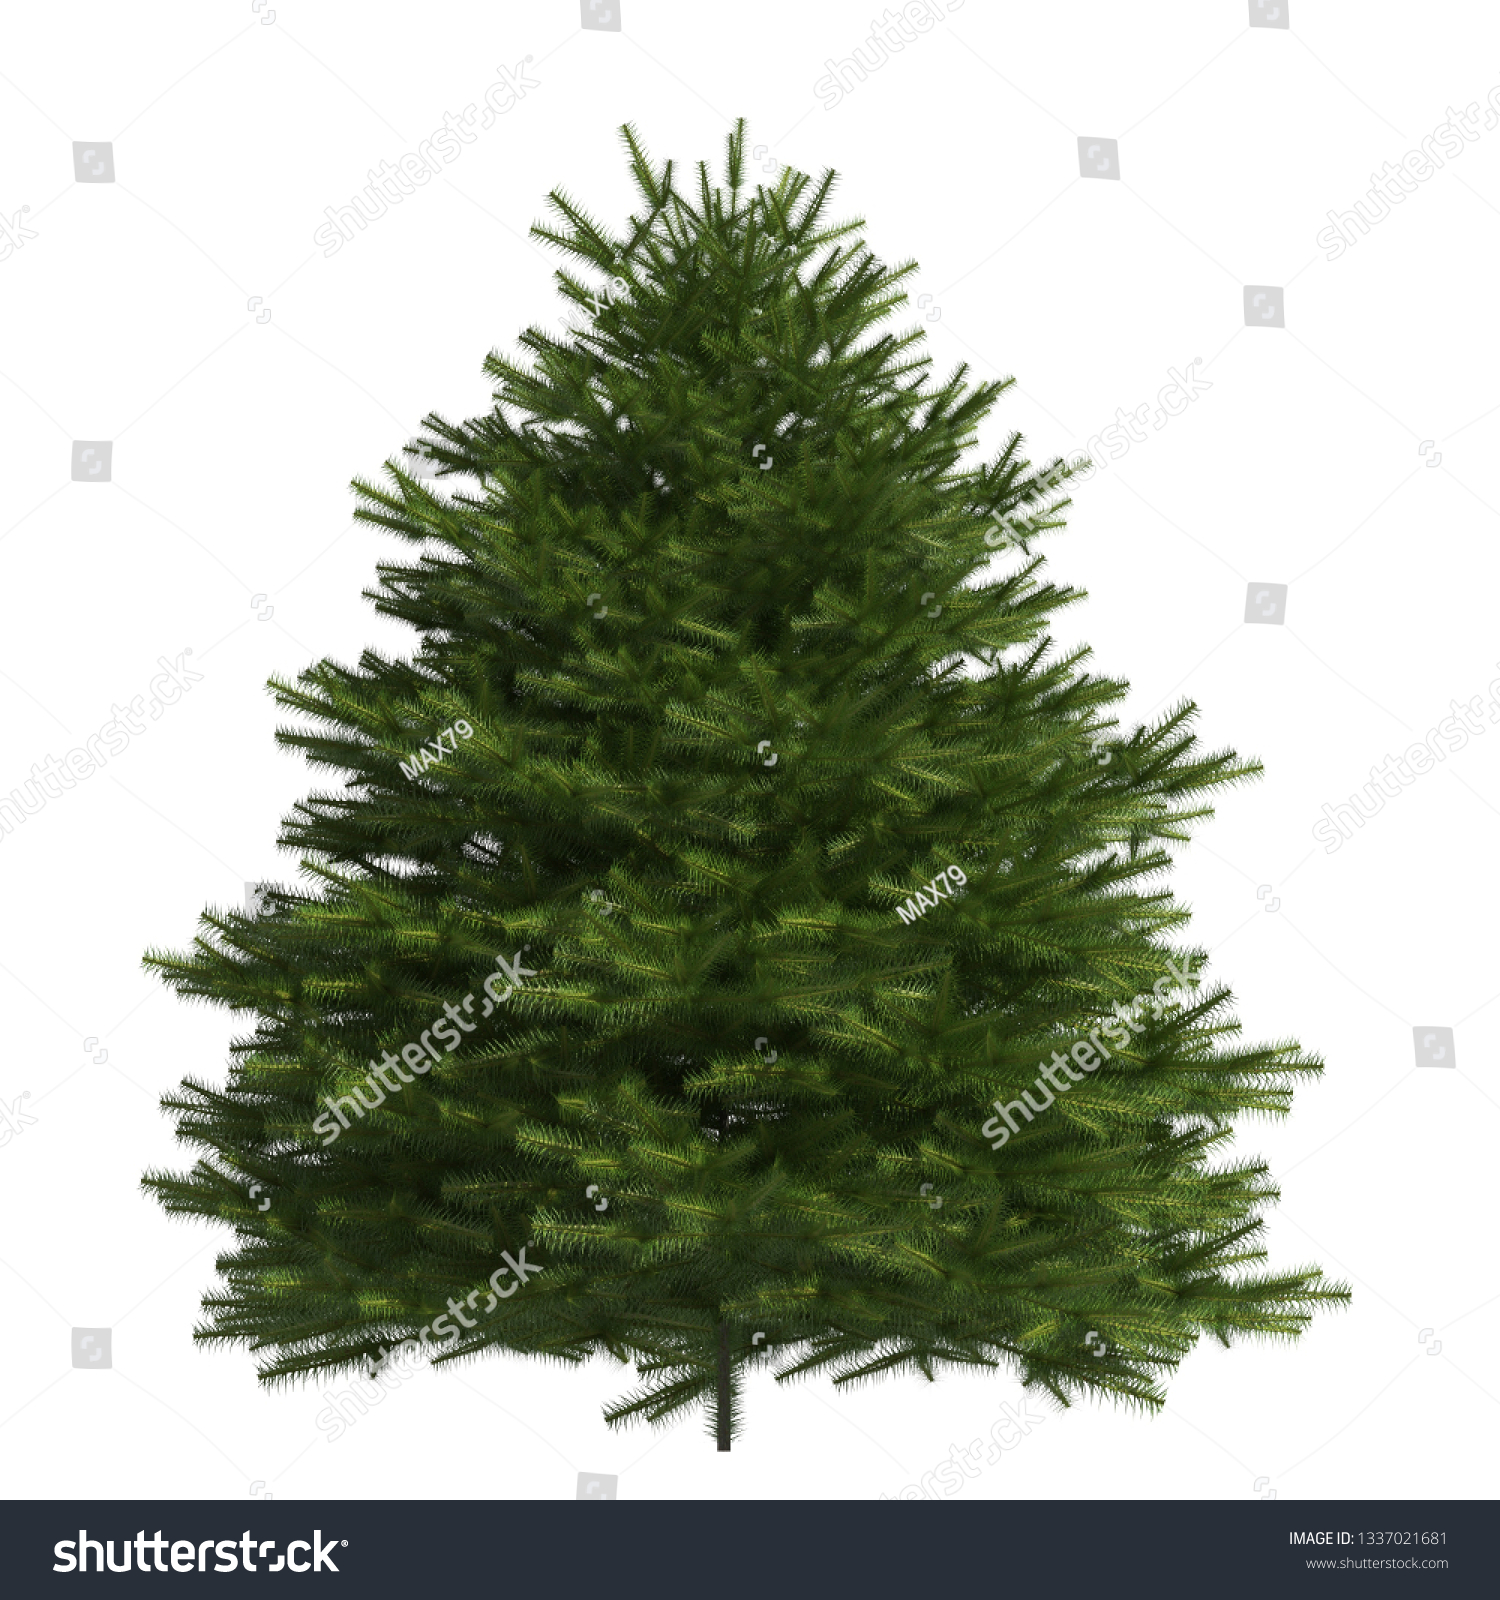 Pine tree 3d illustration isolated on the white background #1337021681